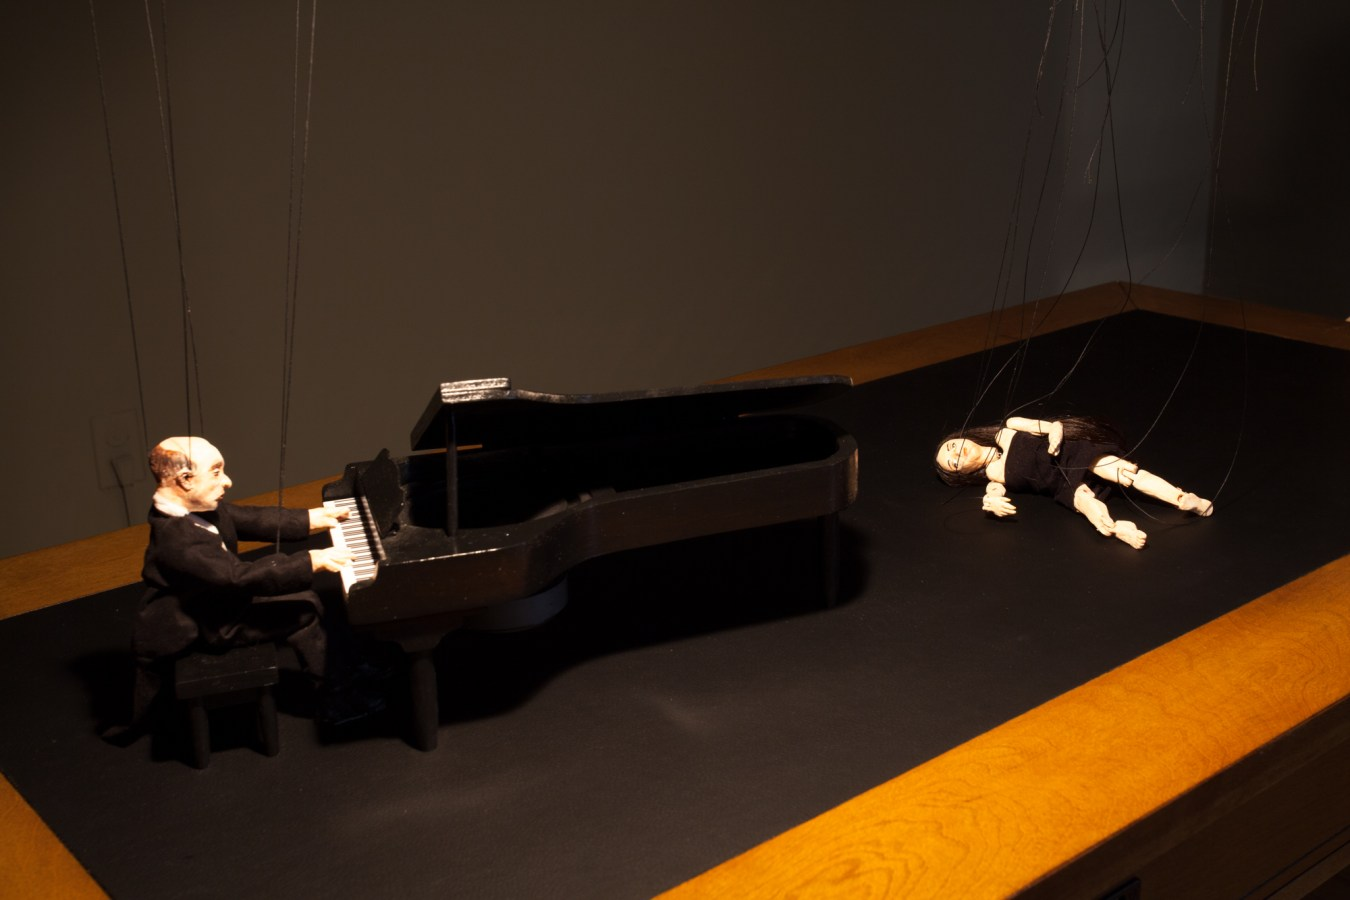 Close up of a marionette playing the piano and a dancer marionette on a desktop